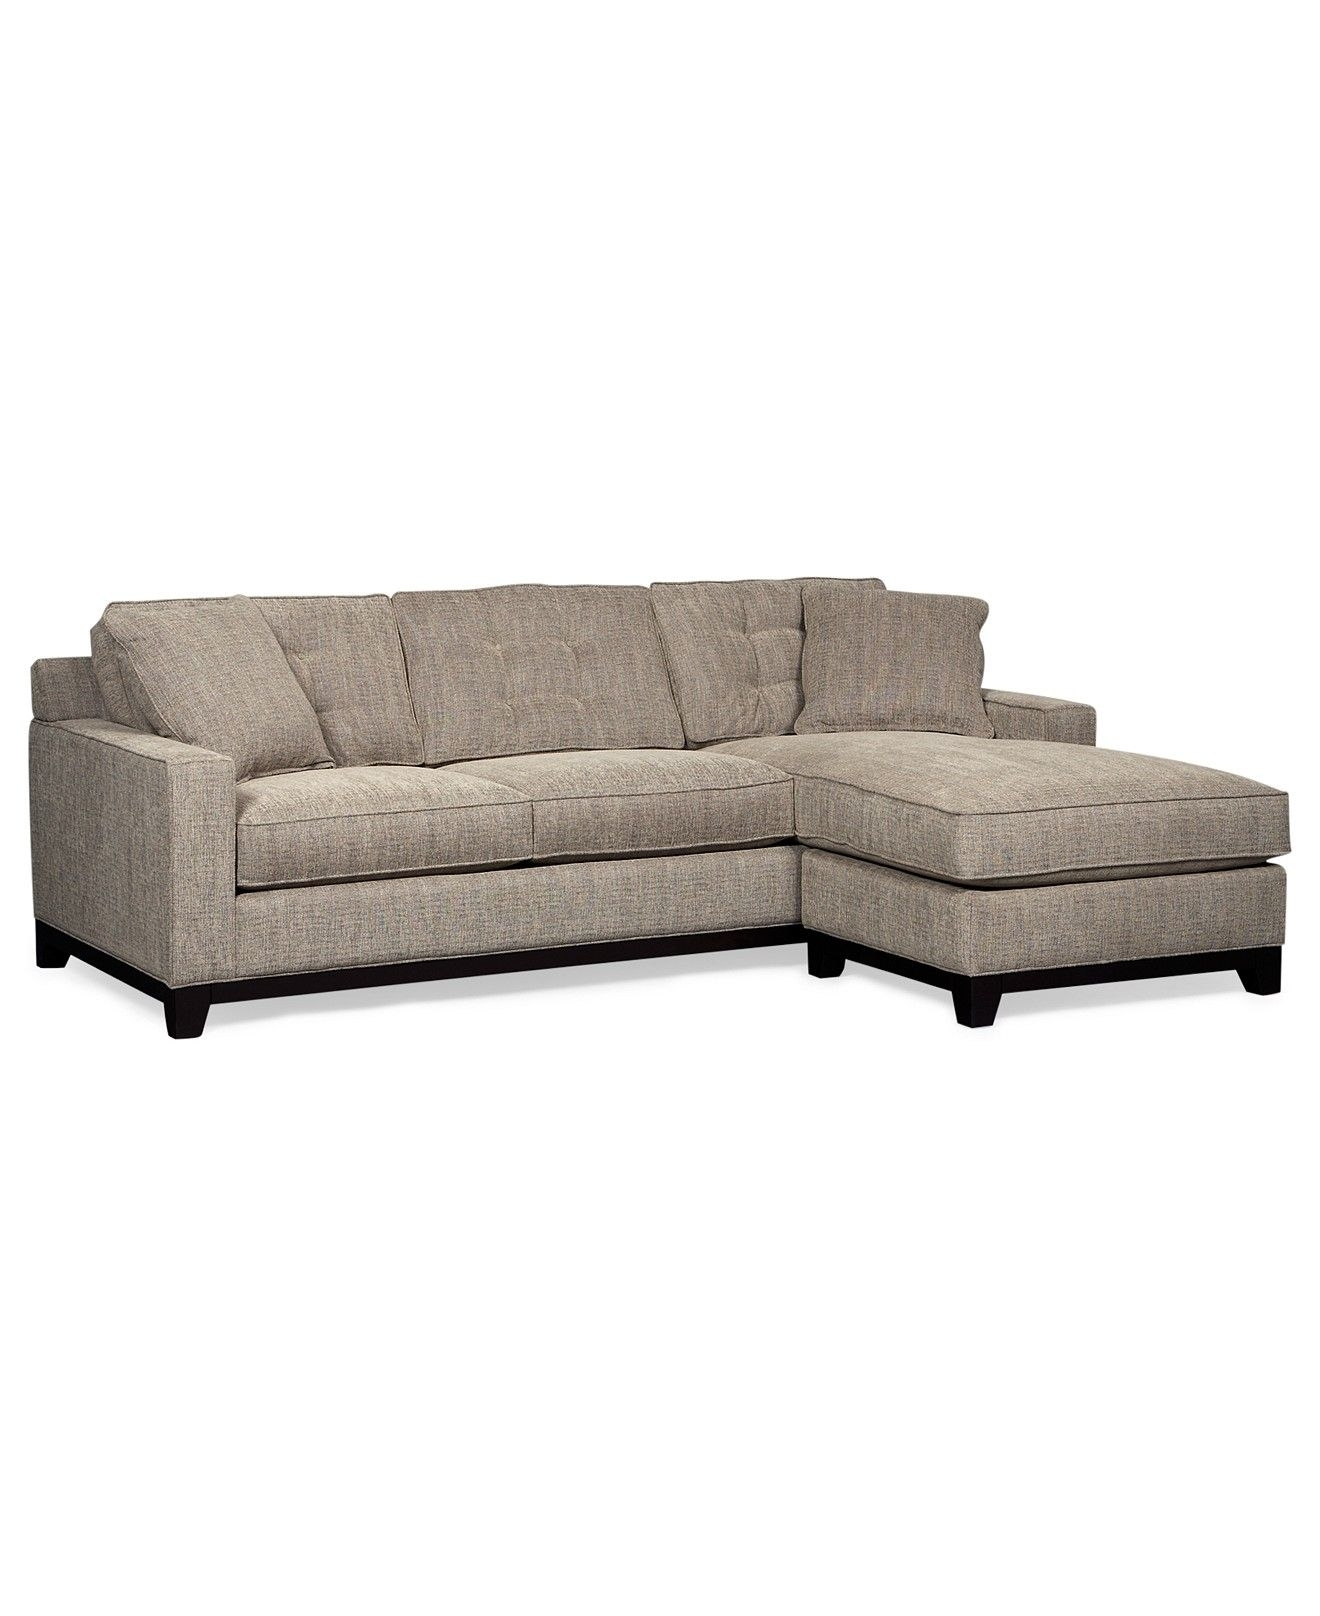 Clarke Fabric 2 Piece Sectional Sofa, Only At Macy's – Couches Pertaining To Turdur 2 Piece Sectionals With Laf Loveseat (View 5 of 25)